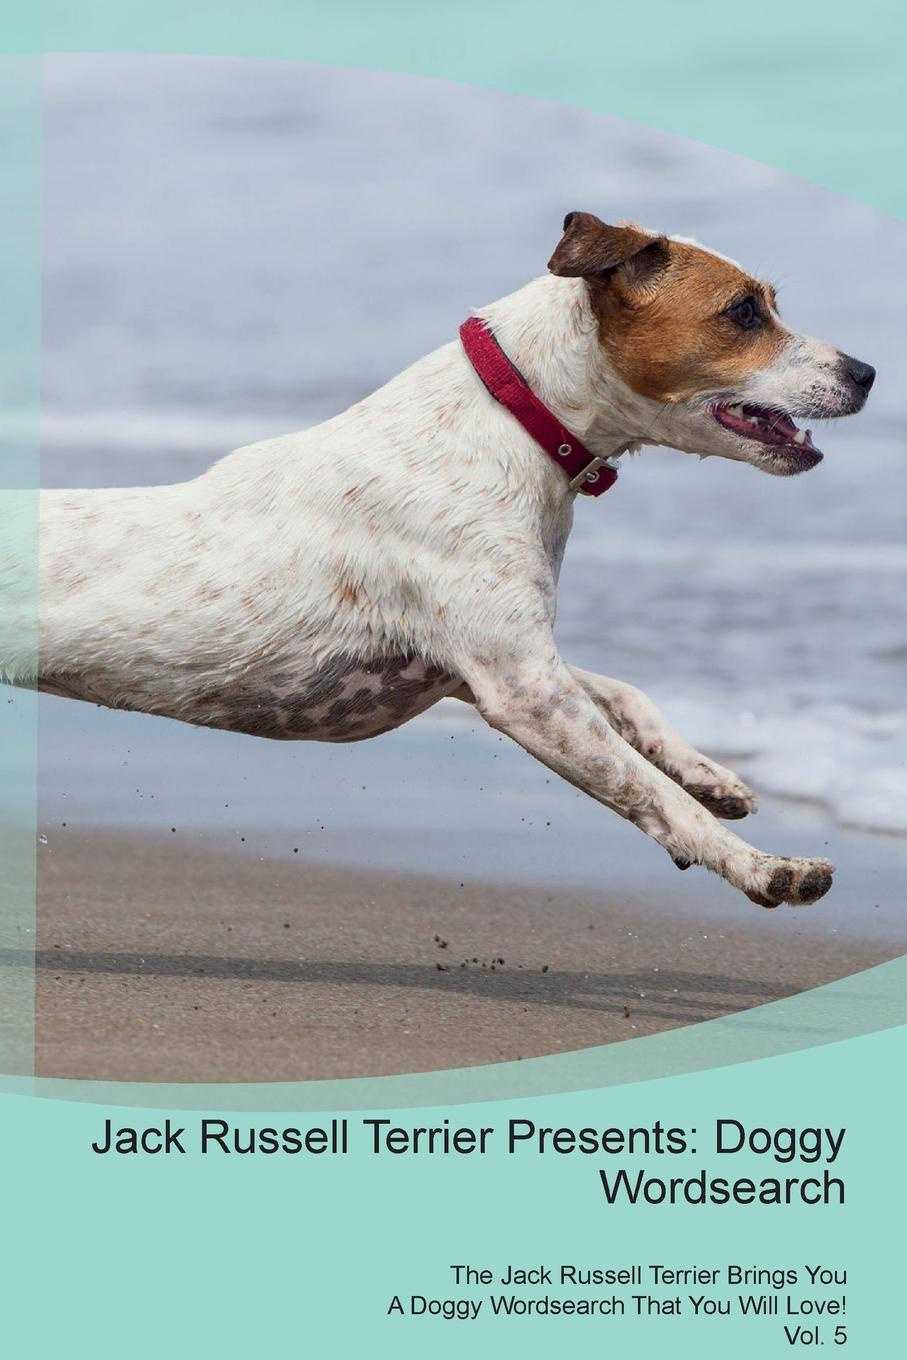 Doggy Puzzles Jack Russell Terrier Presents. Wordsearch The Brings You A That Will Love! Vol. 5